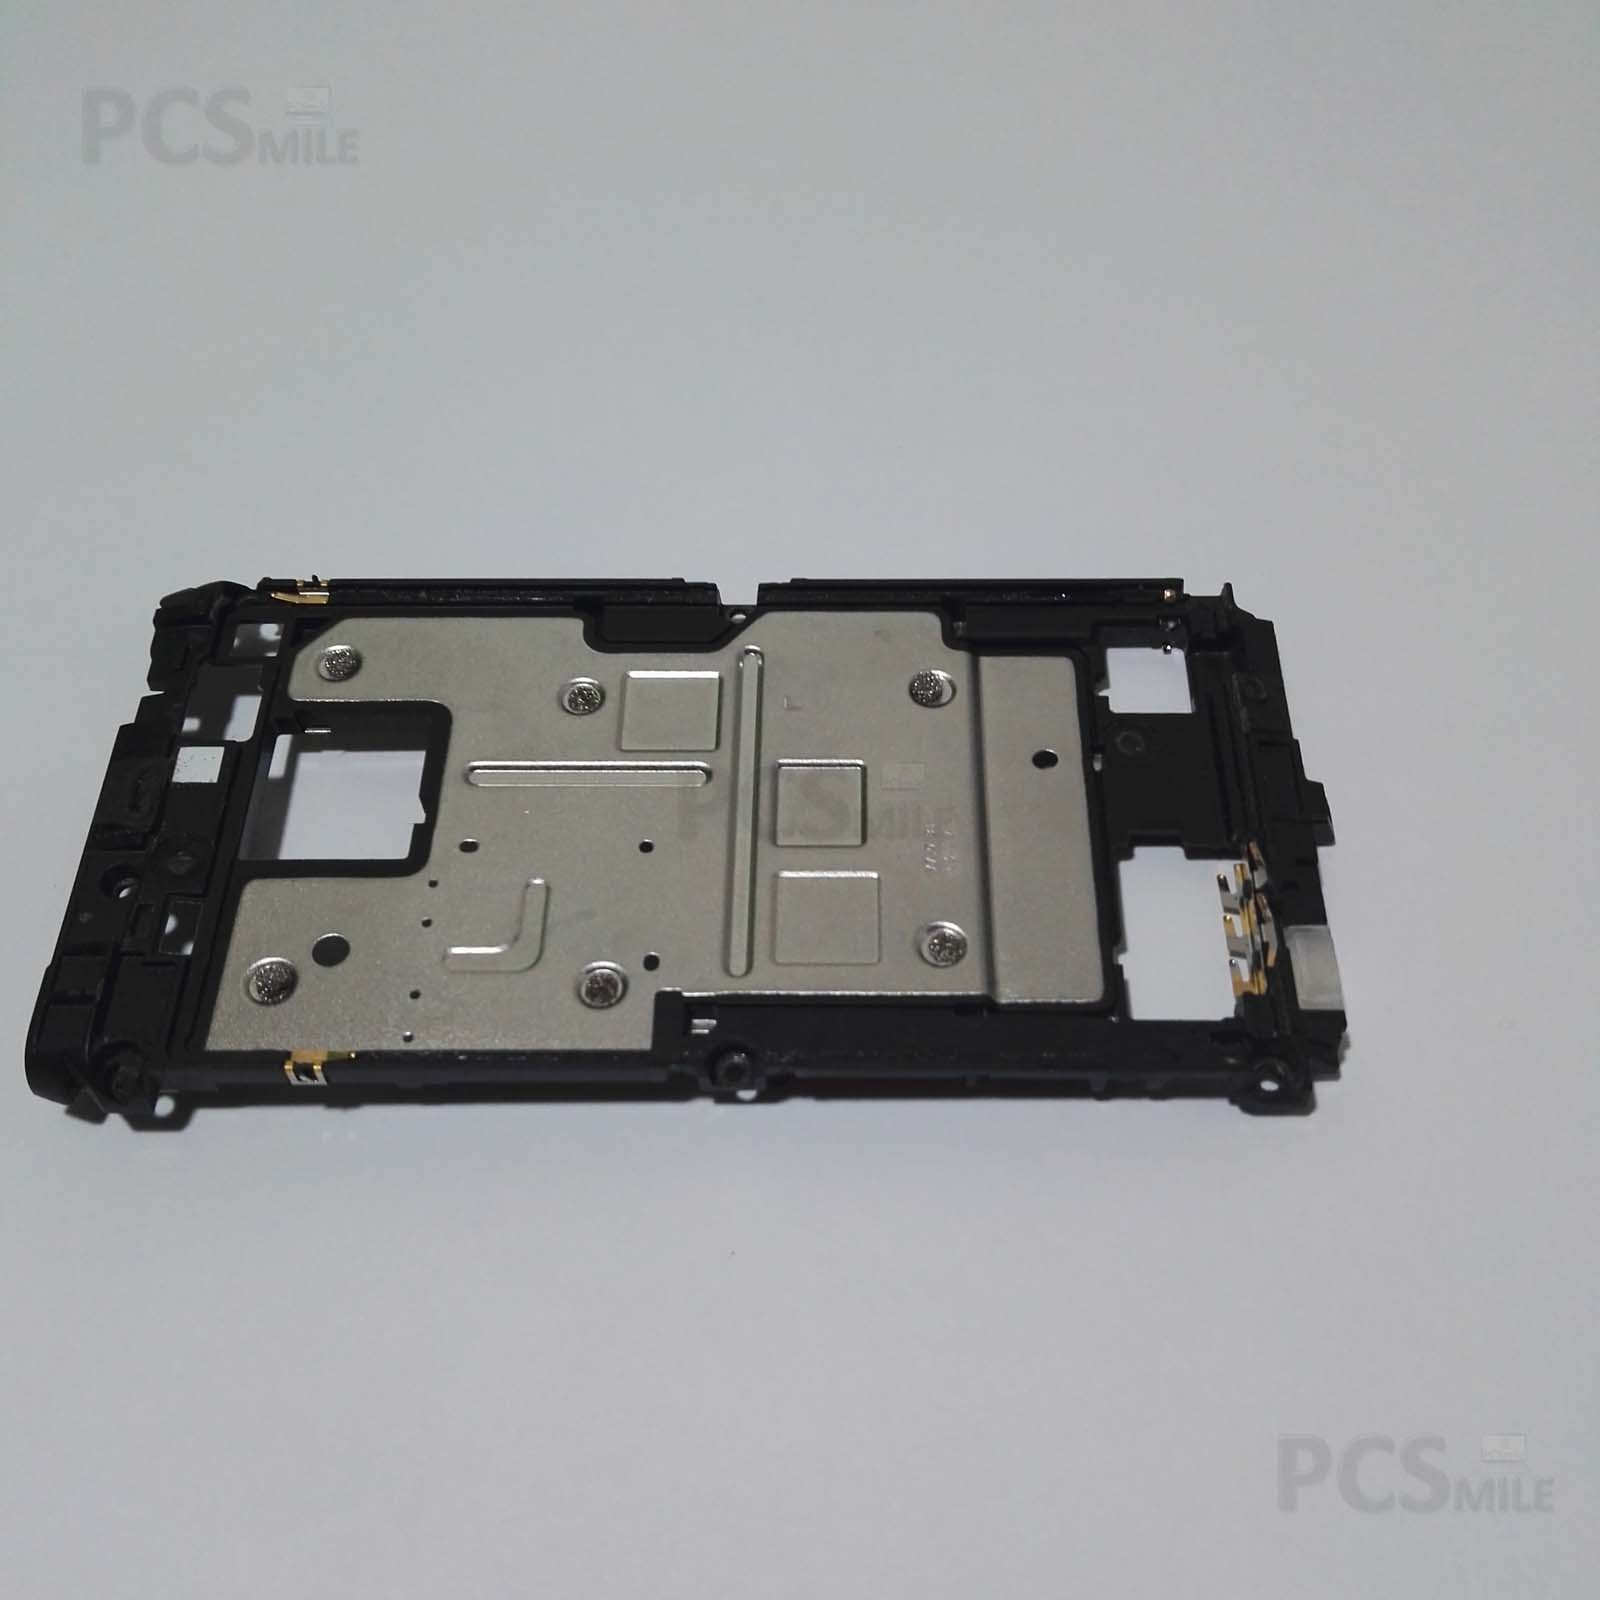 Telaio supporto scheda madre display Nokia N8 059d607